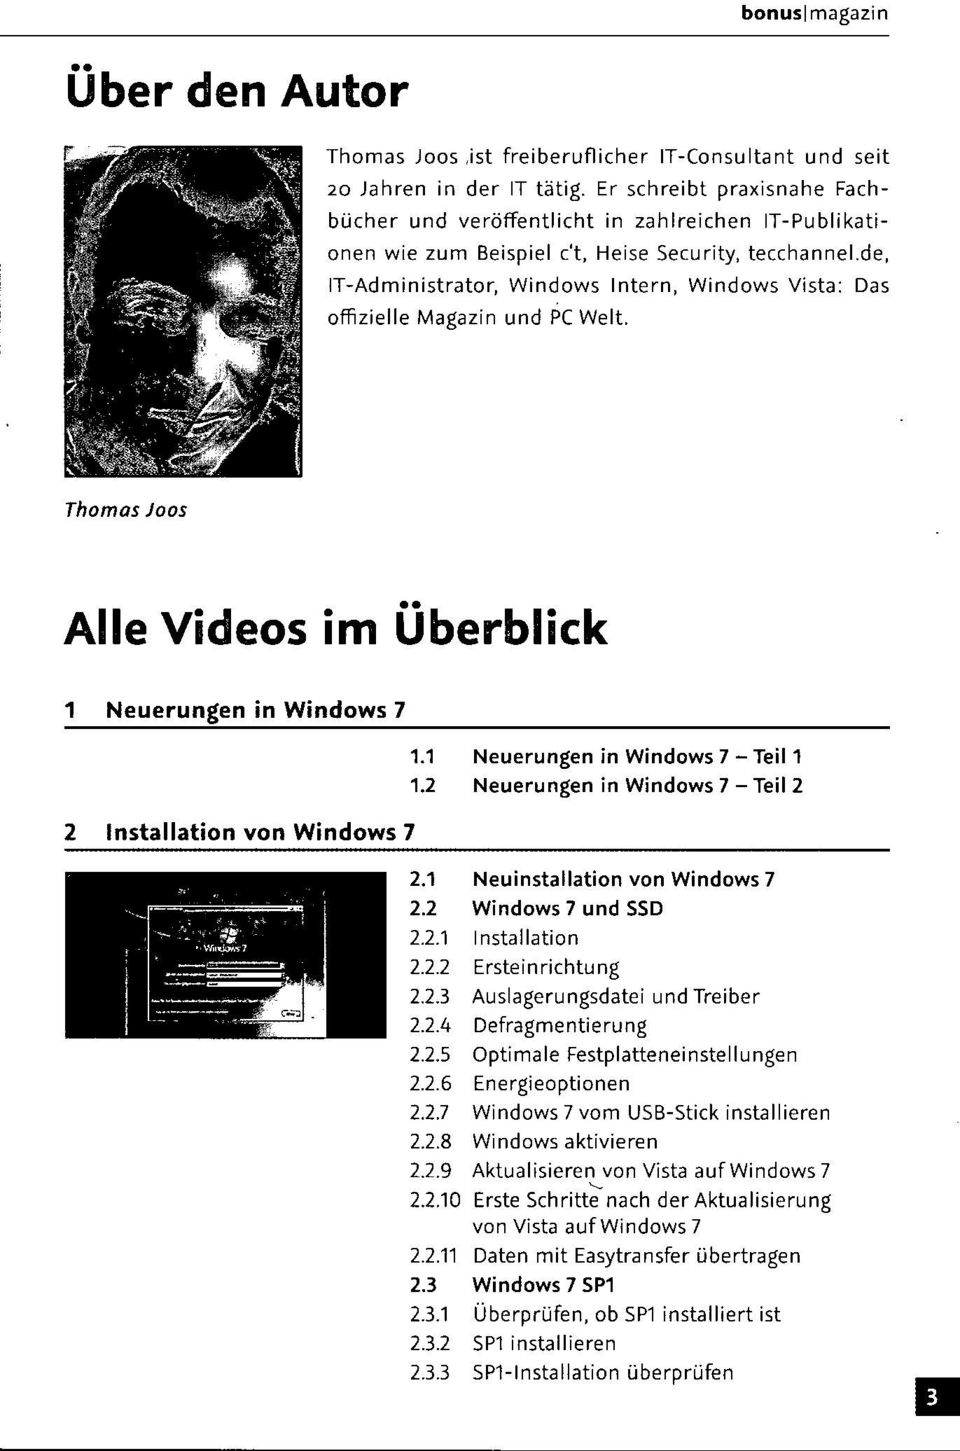 de, IT-Administrator, Windows Intern, Windows Vista: Das offizielle Magazin und PC Welt. Thomas Joos Alle Videos im Überblick 1 Neuerungen in Windows 7 1.1 1.